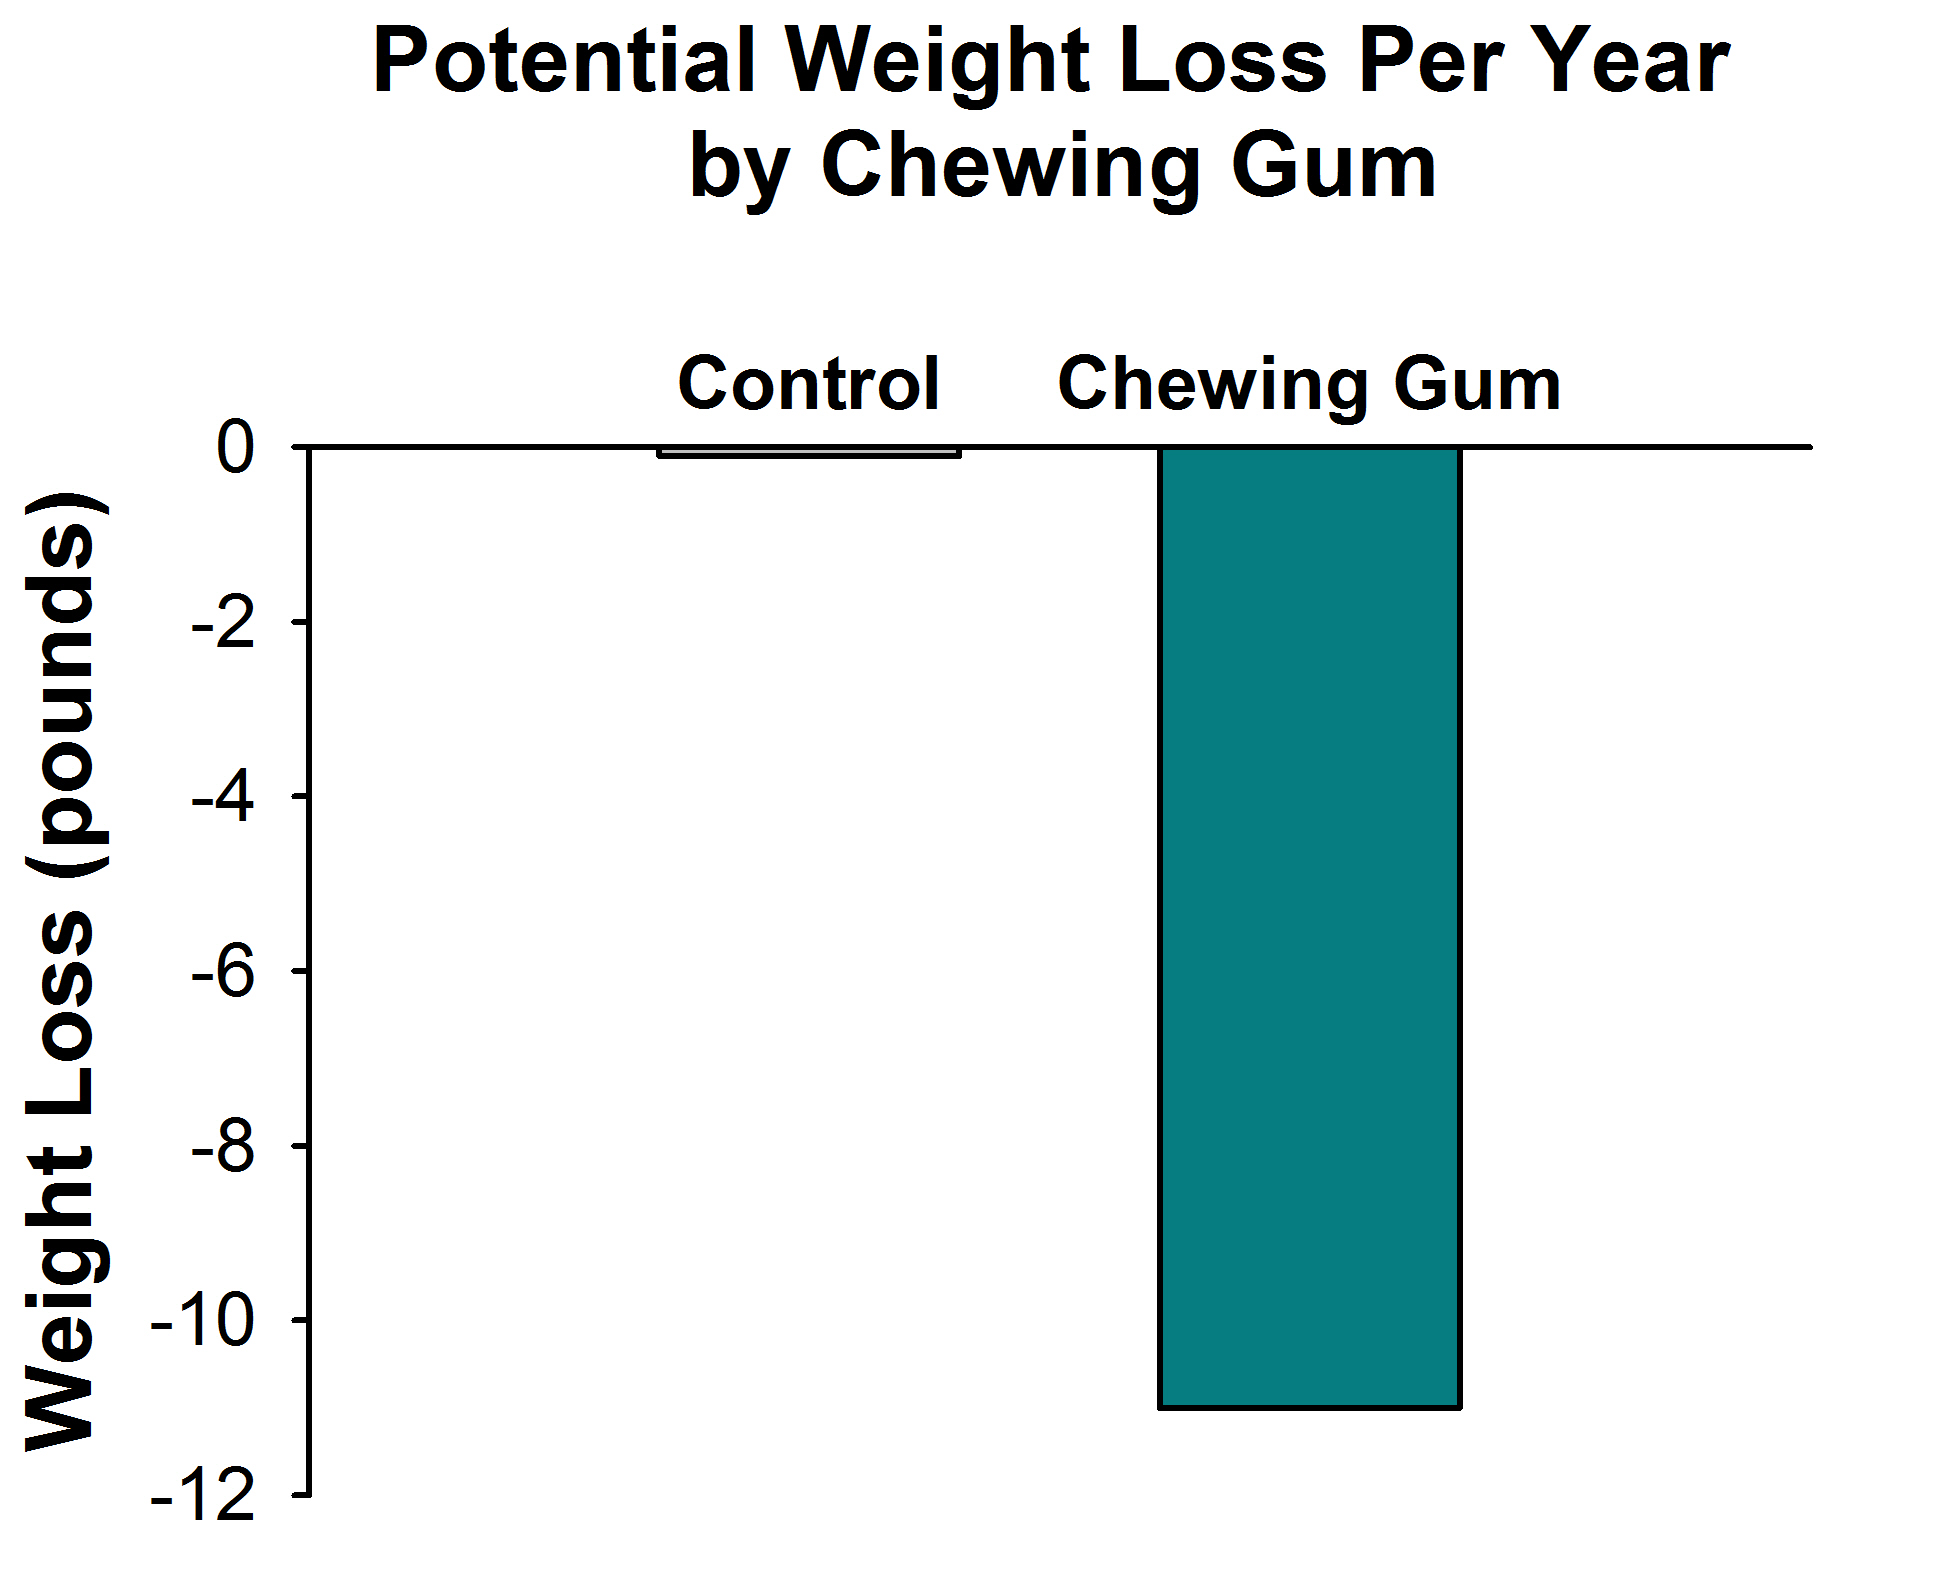 Figure 3. Theoretical Weight Loss in One Year from Chewing Gum.